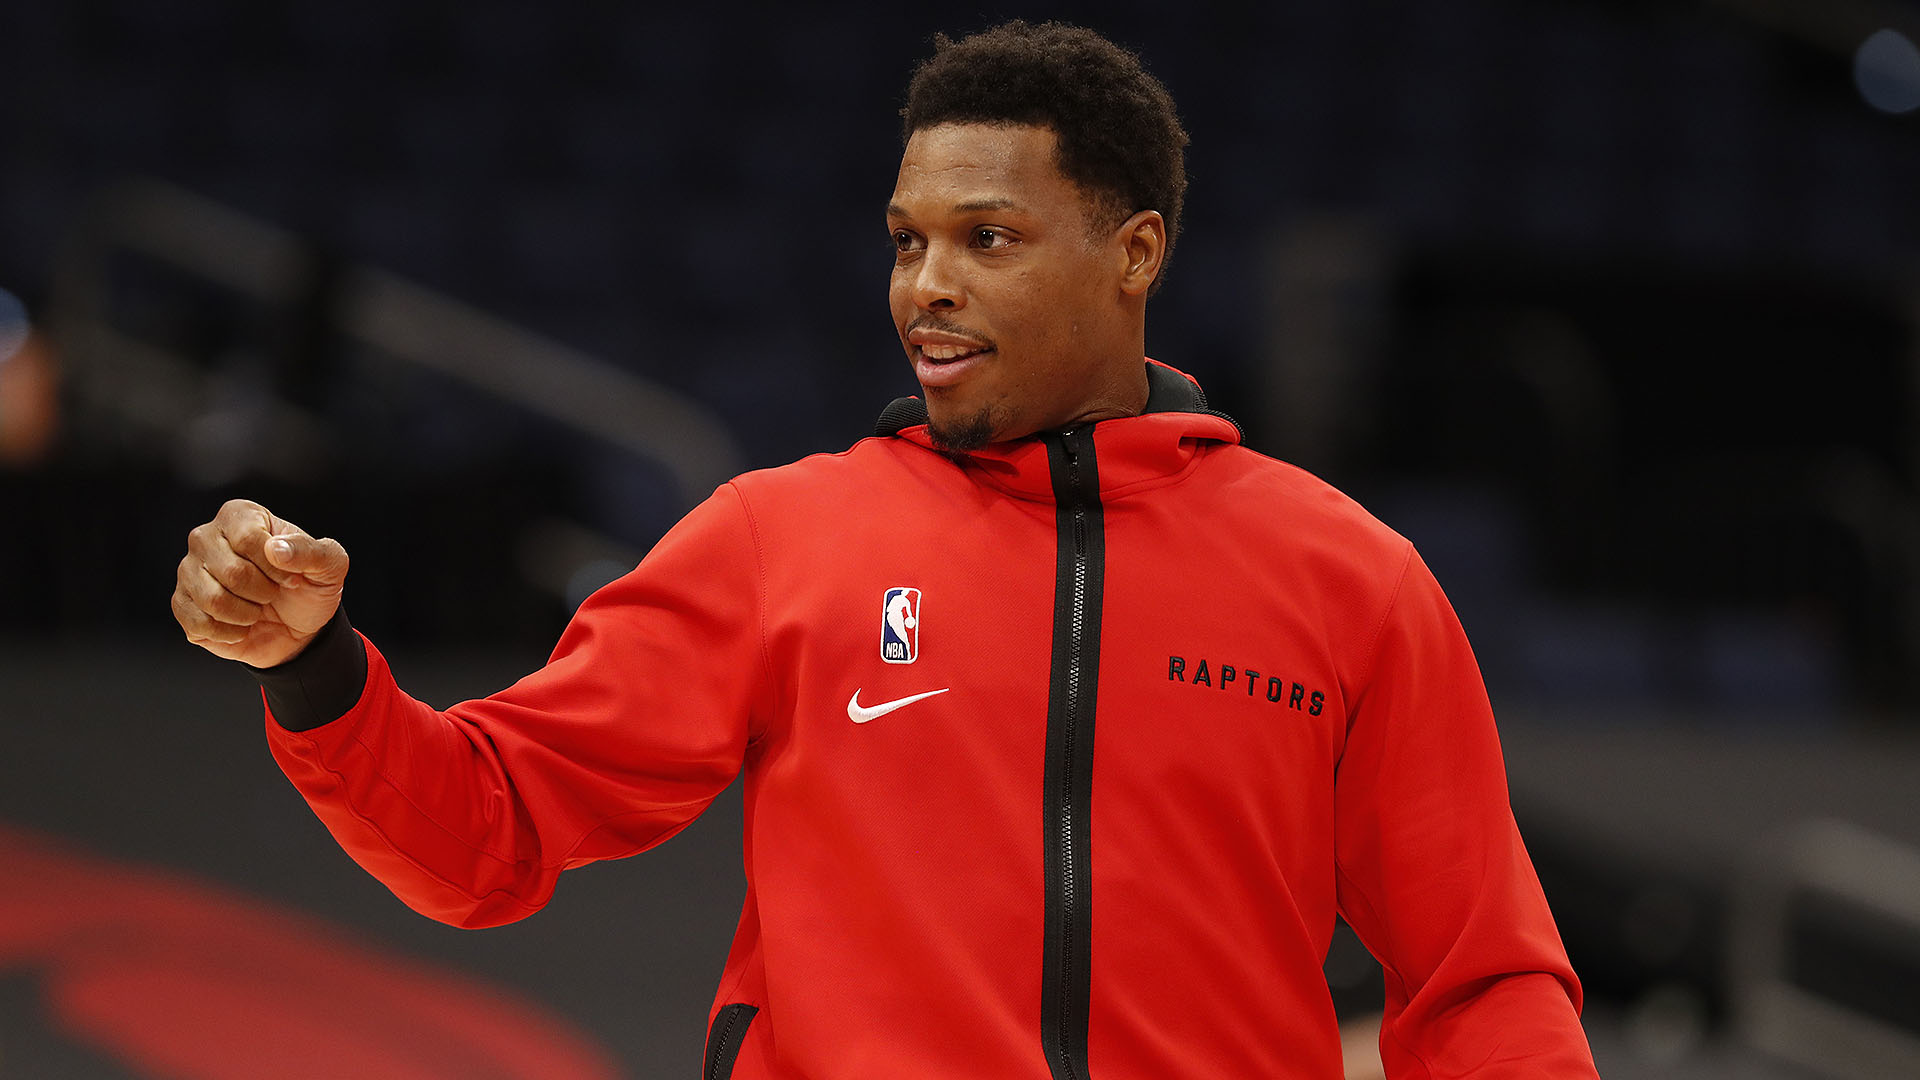 Kyle Lowry bids farewell to Toronto with full page ad